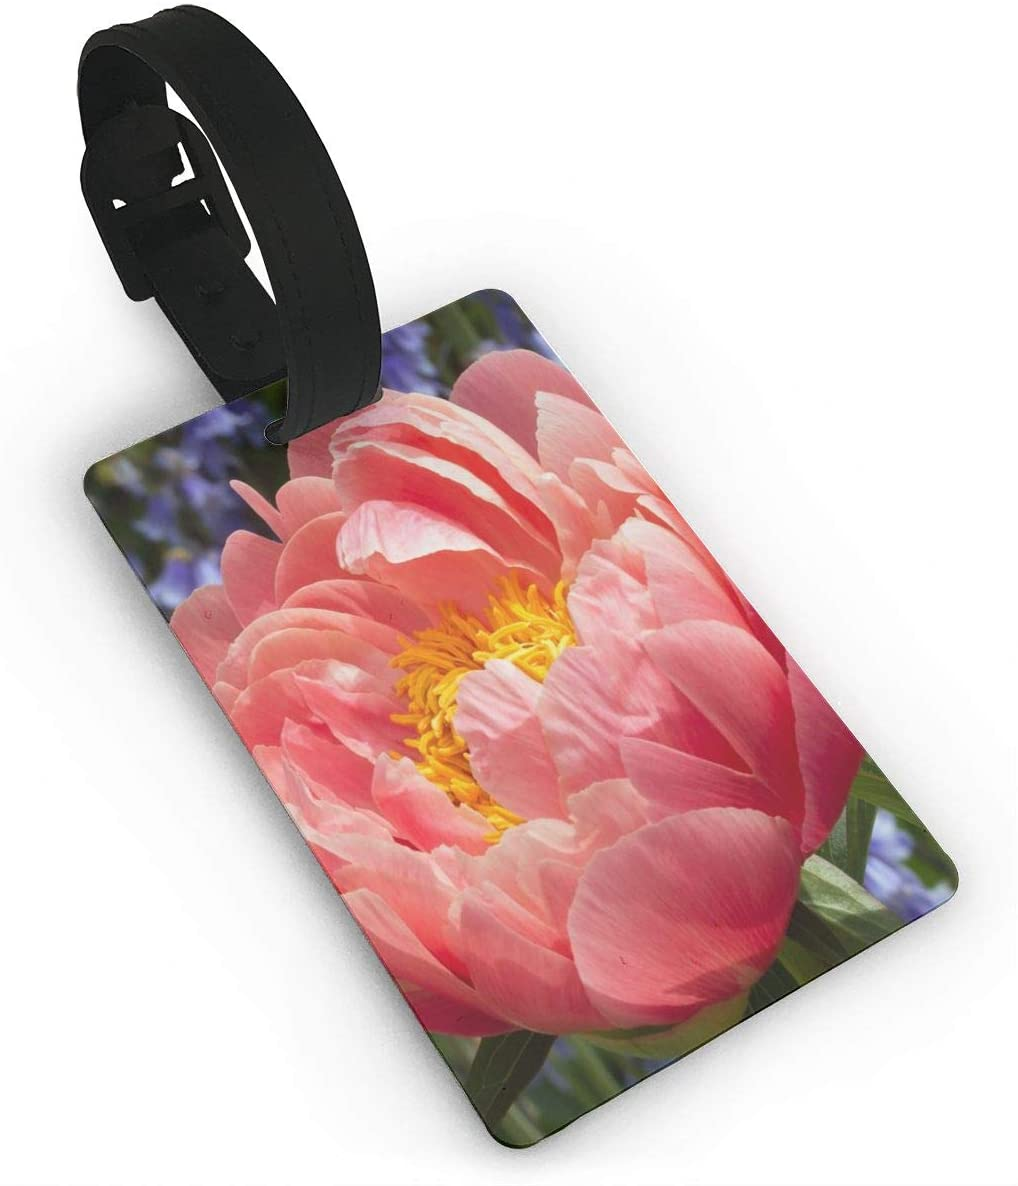 Luggage Tag Travel Suitcase Bag Baggage Tags PU Leather, Large Pink Peony Vector